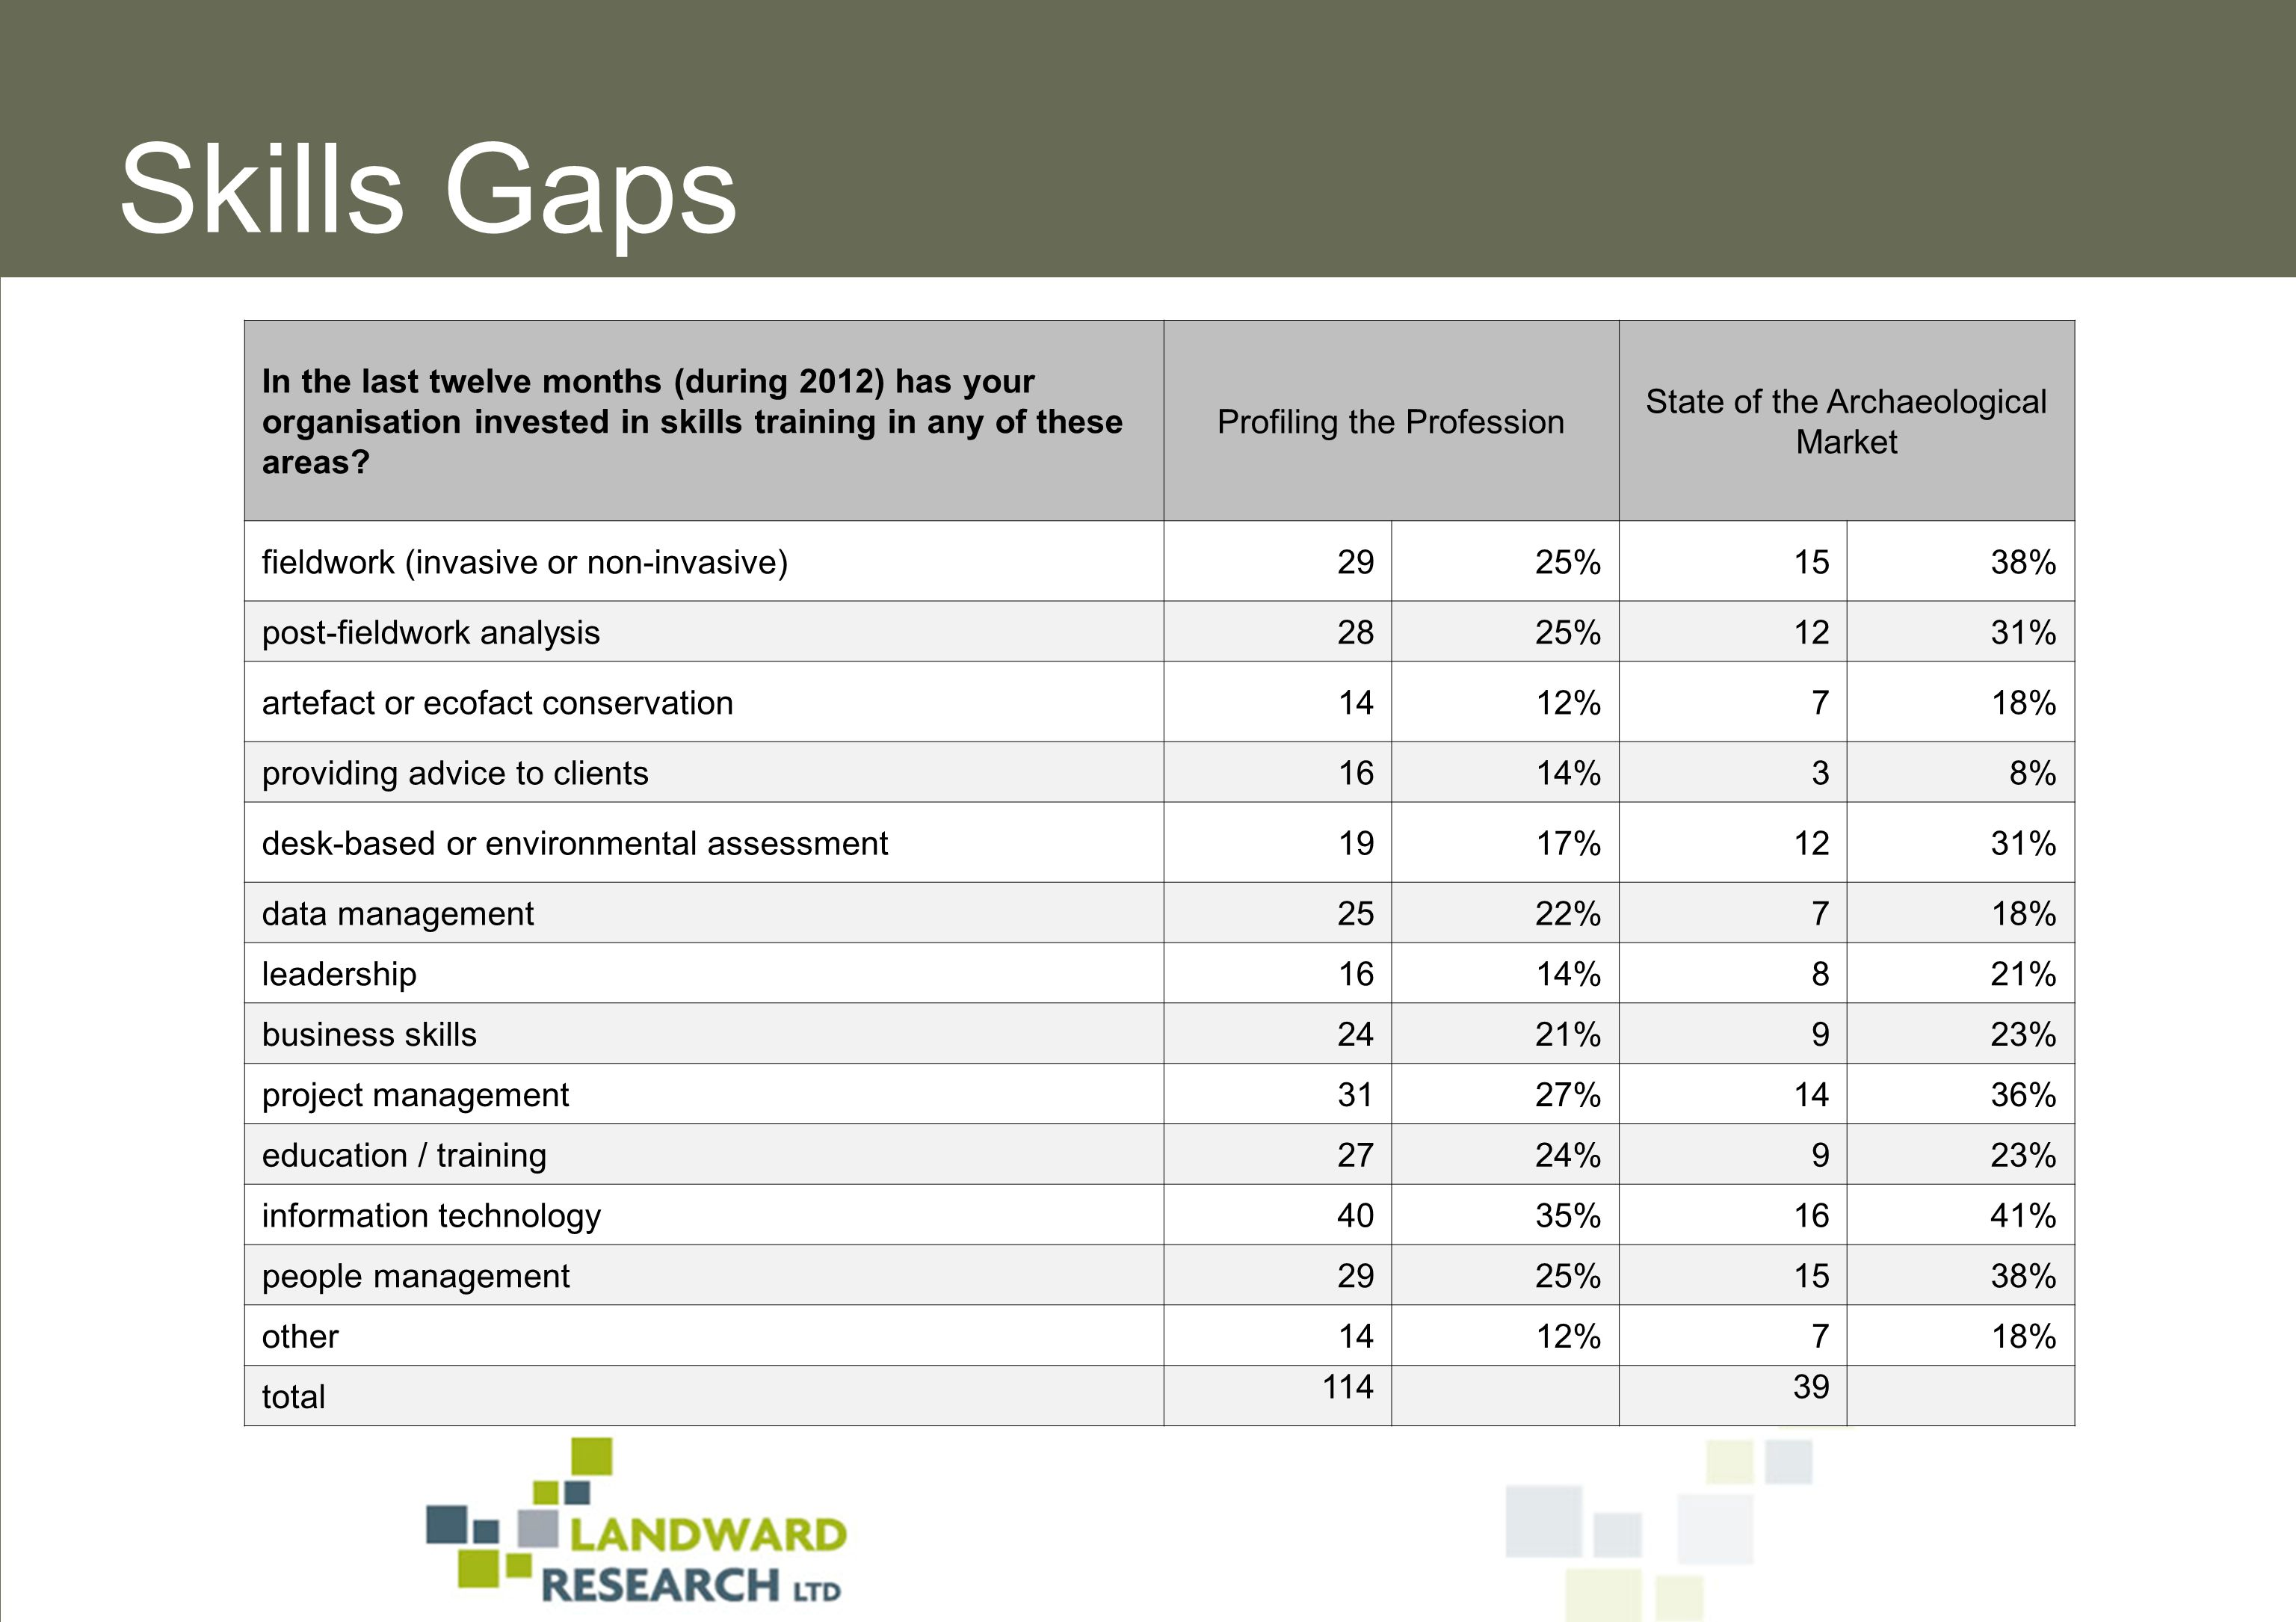 In the last twelve months (during 2012) has your organisation invested in skills training in any of these areas.